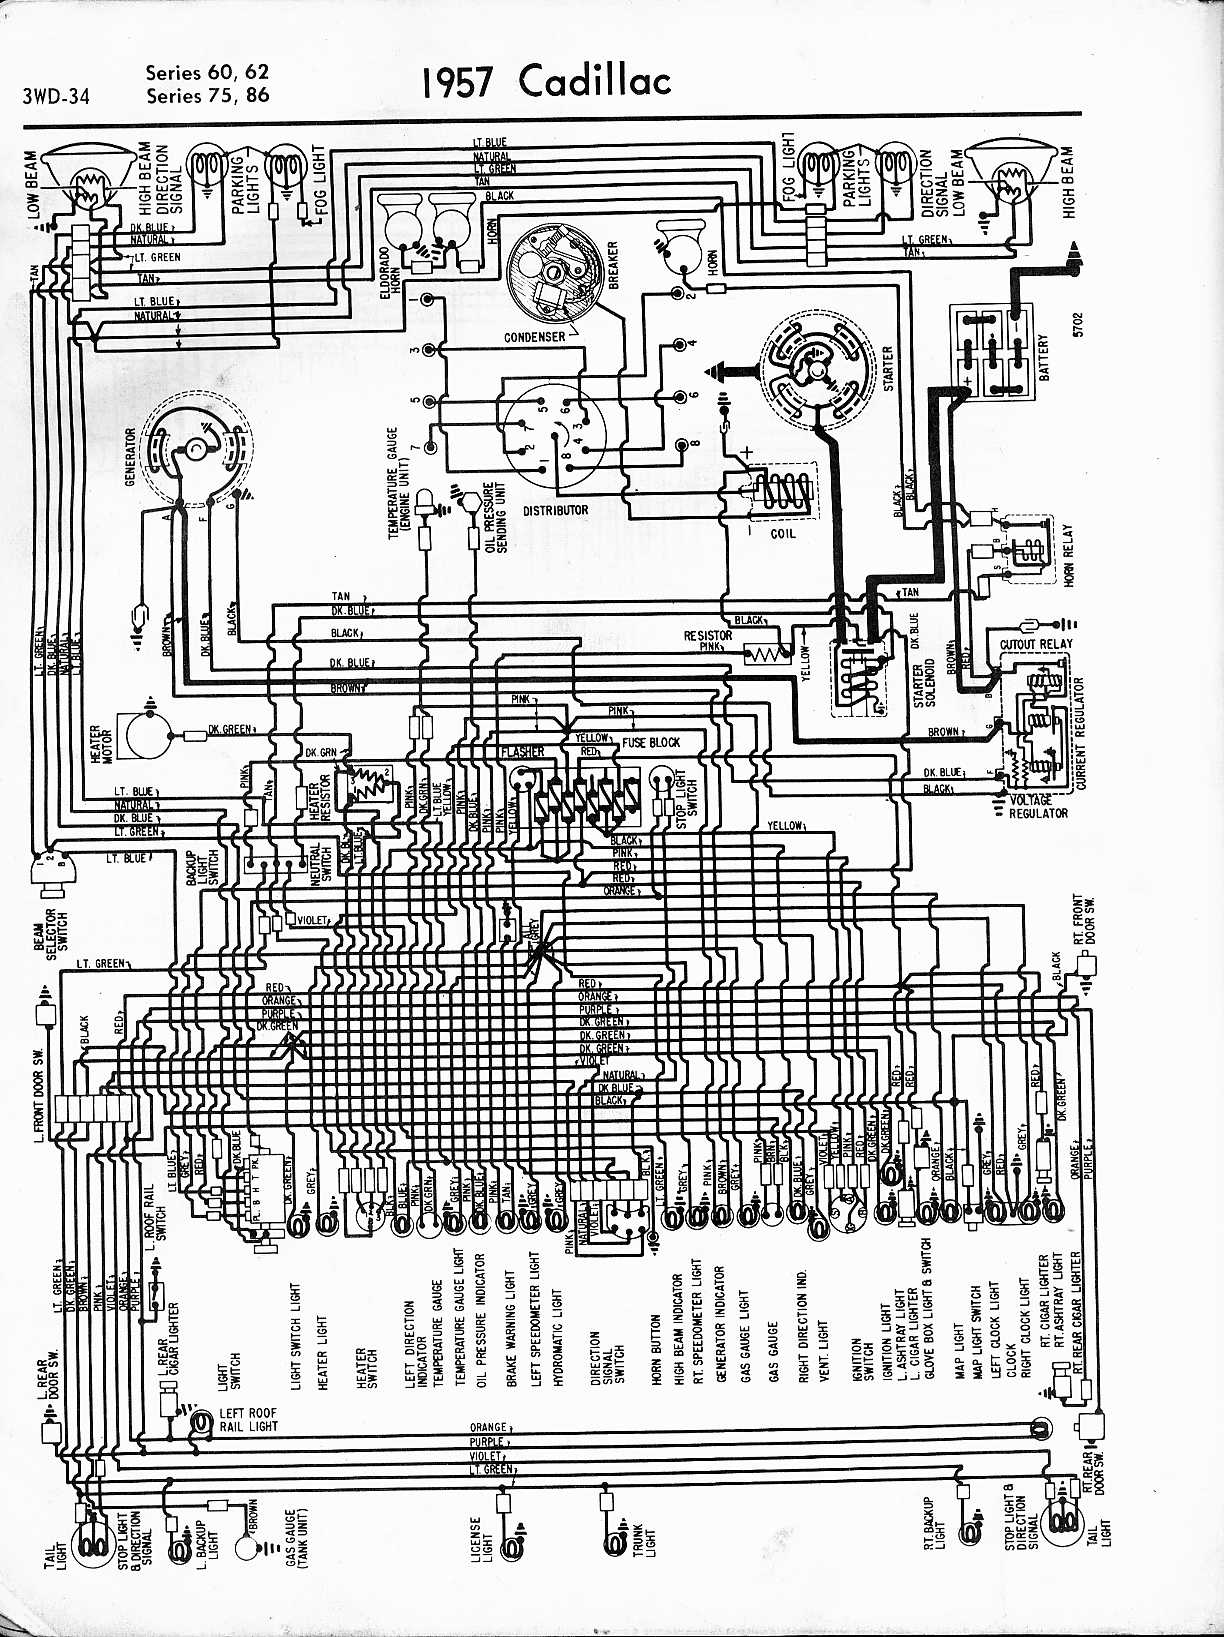 1957 Cadillac Headlight Switch Diagram Wiring Diagrams 1958 Ford Ranchero Schematic Gm